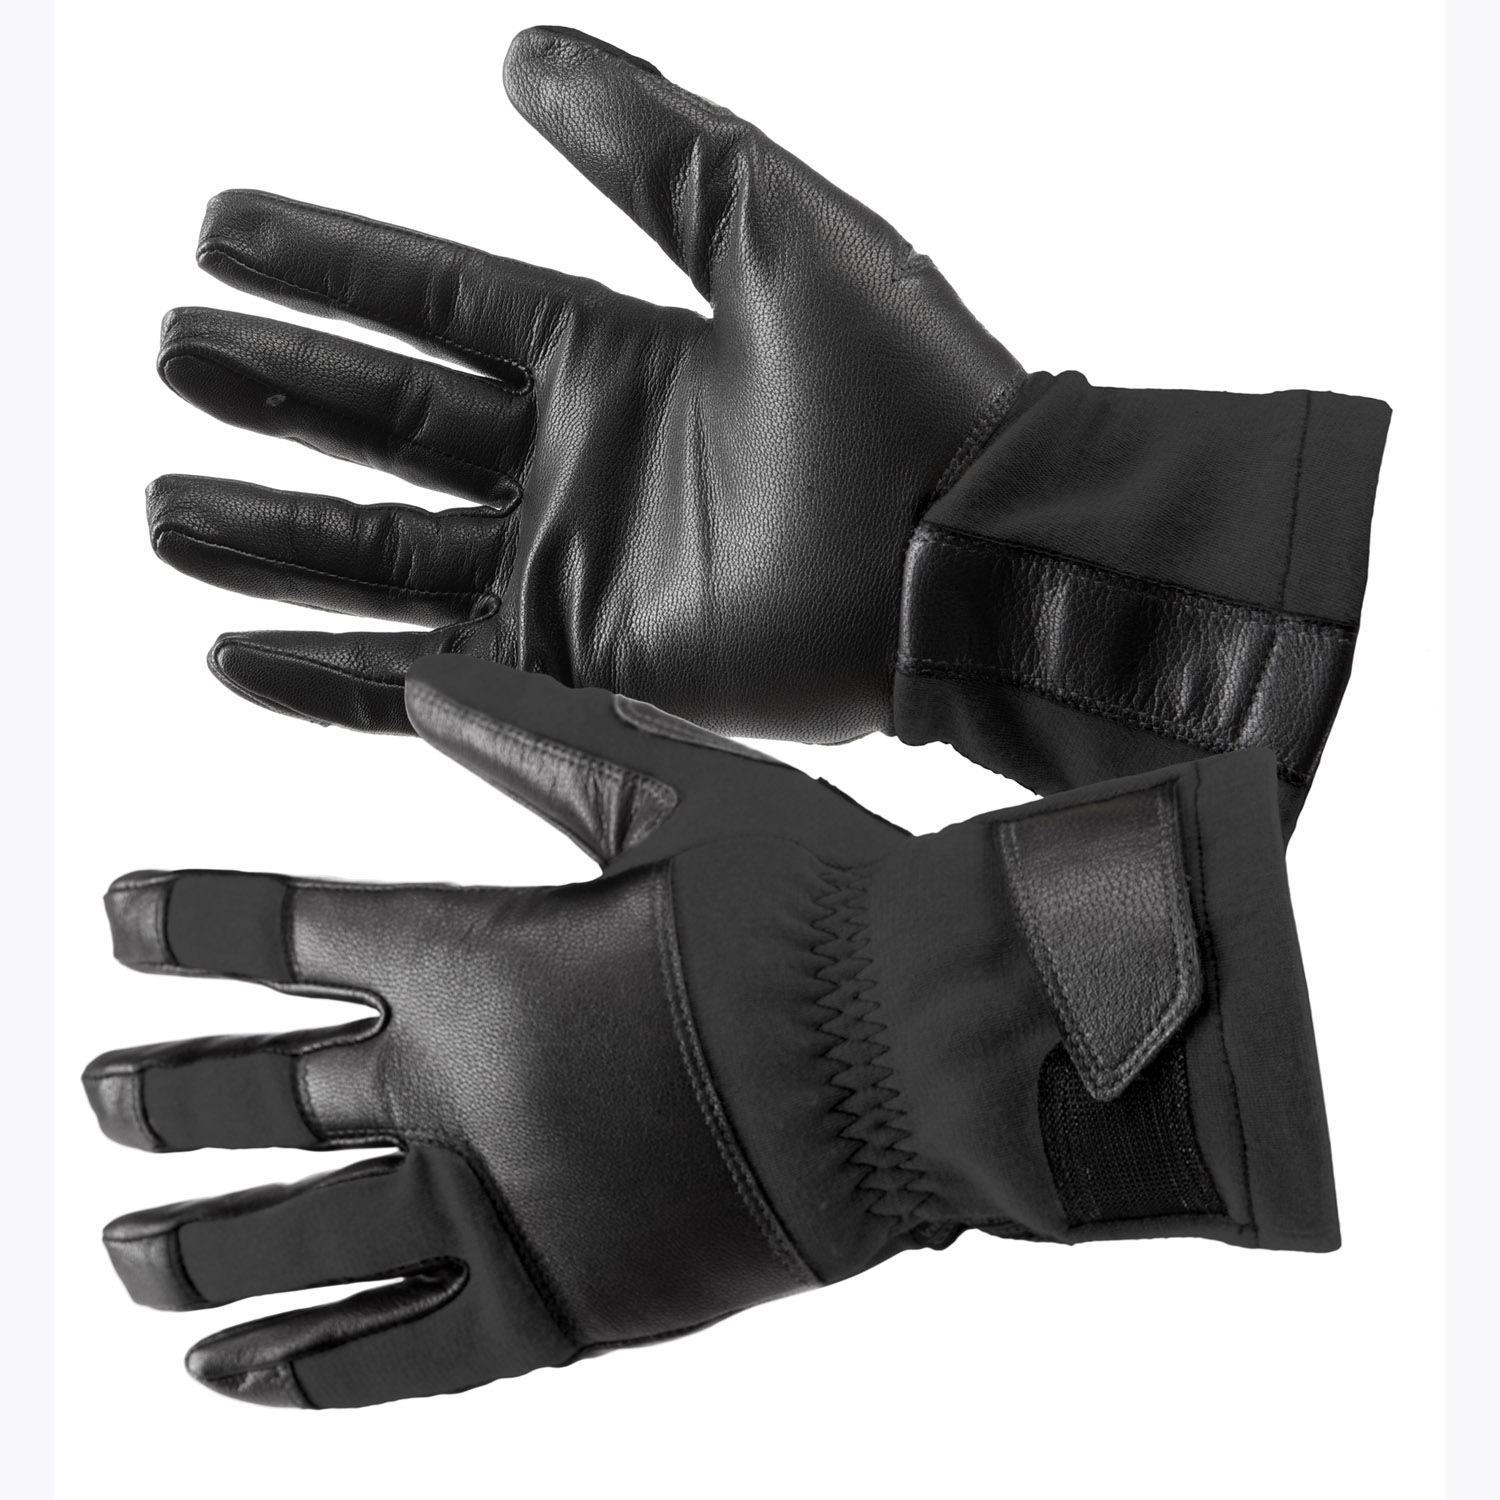 5.11 Tactical Tac NFOE2 Tactical Glove